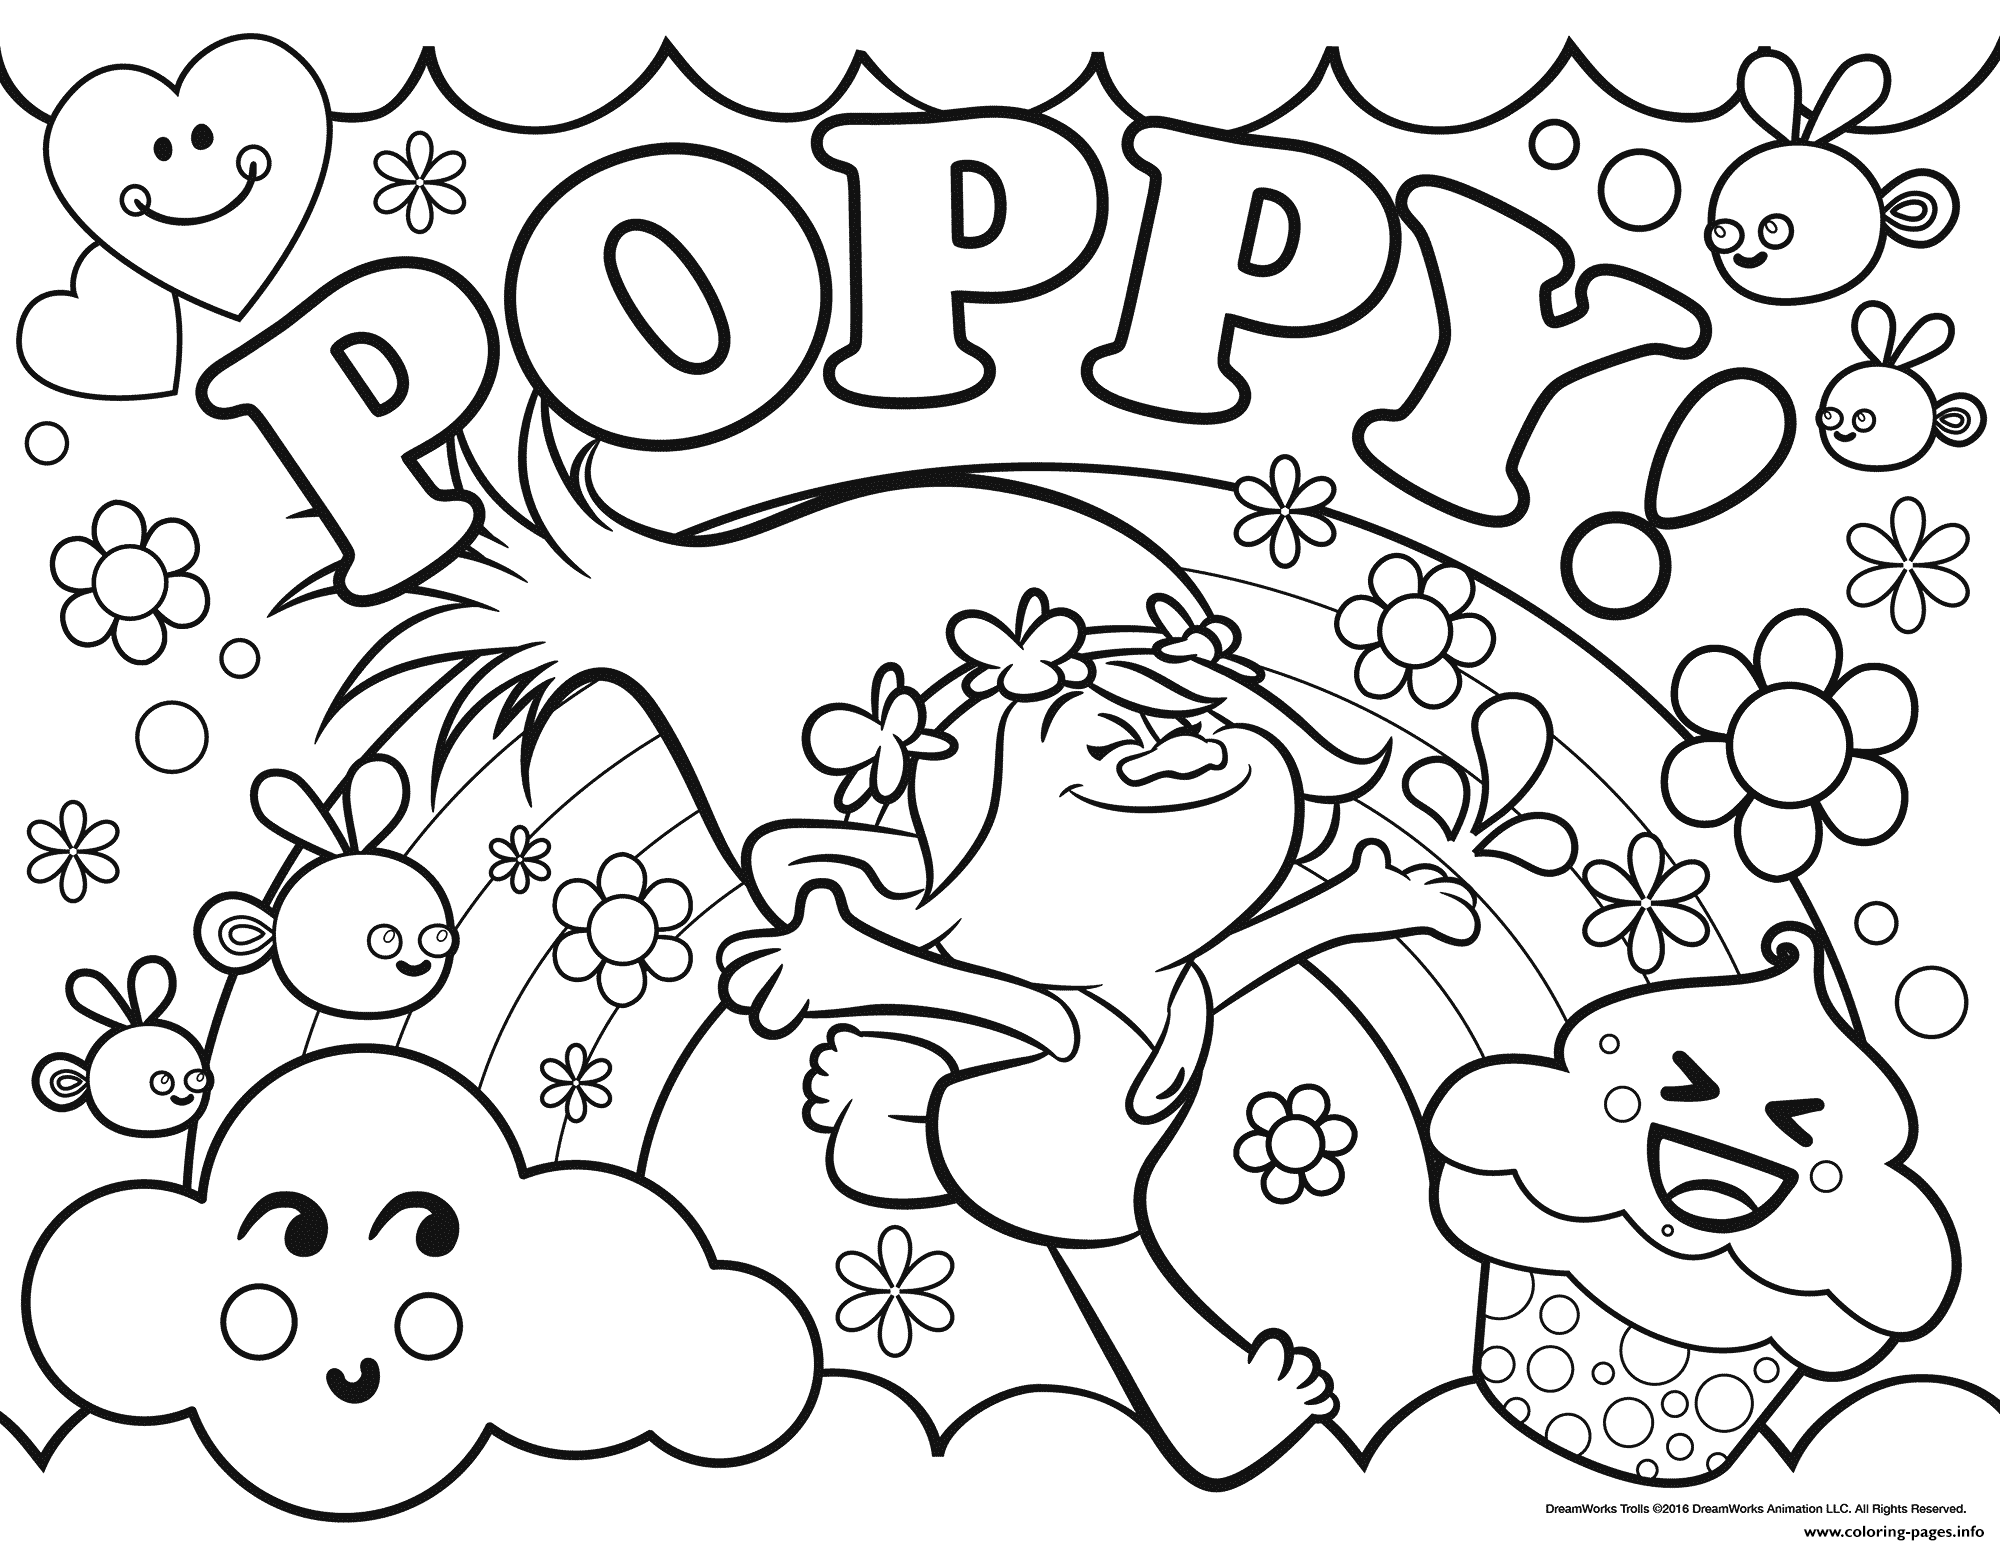 Print Trolls Poppy coloring pages | Lily\'s birthday | Pinterest ...